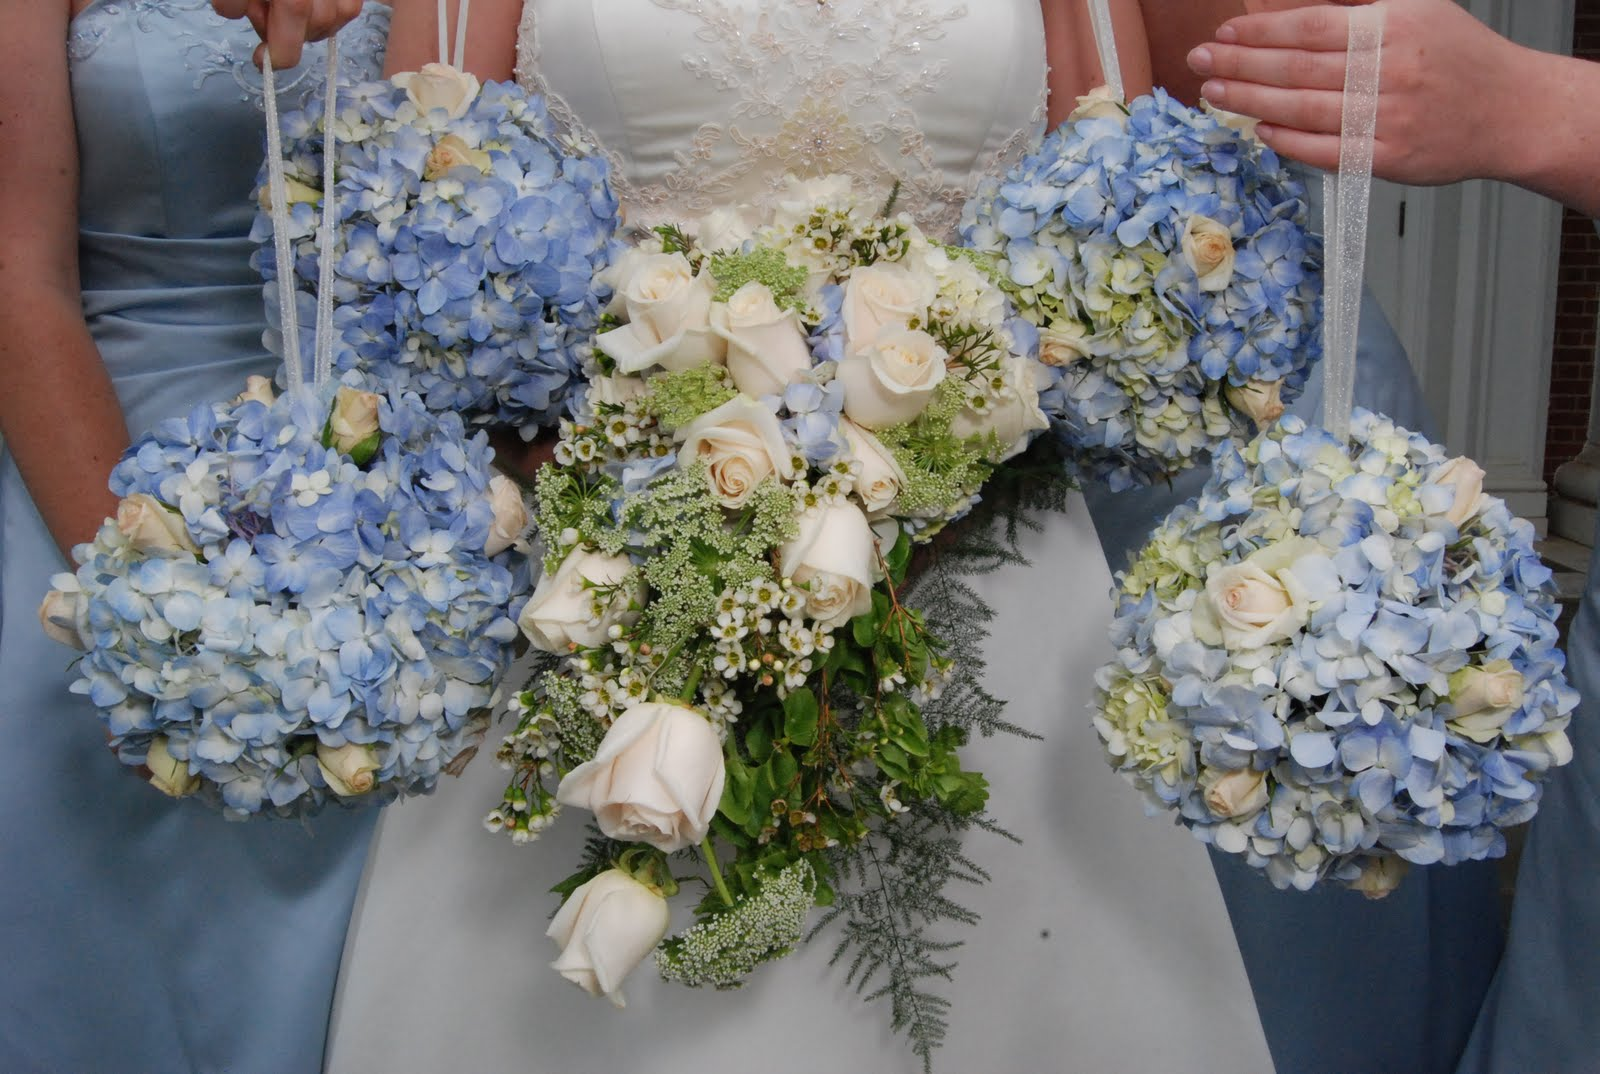 Sherri's Jubilee: Hydrangea Season Is Coming Soon